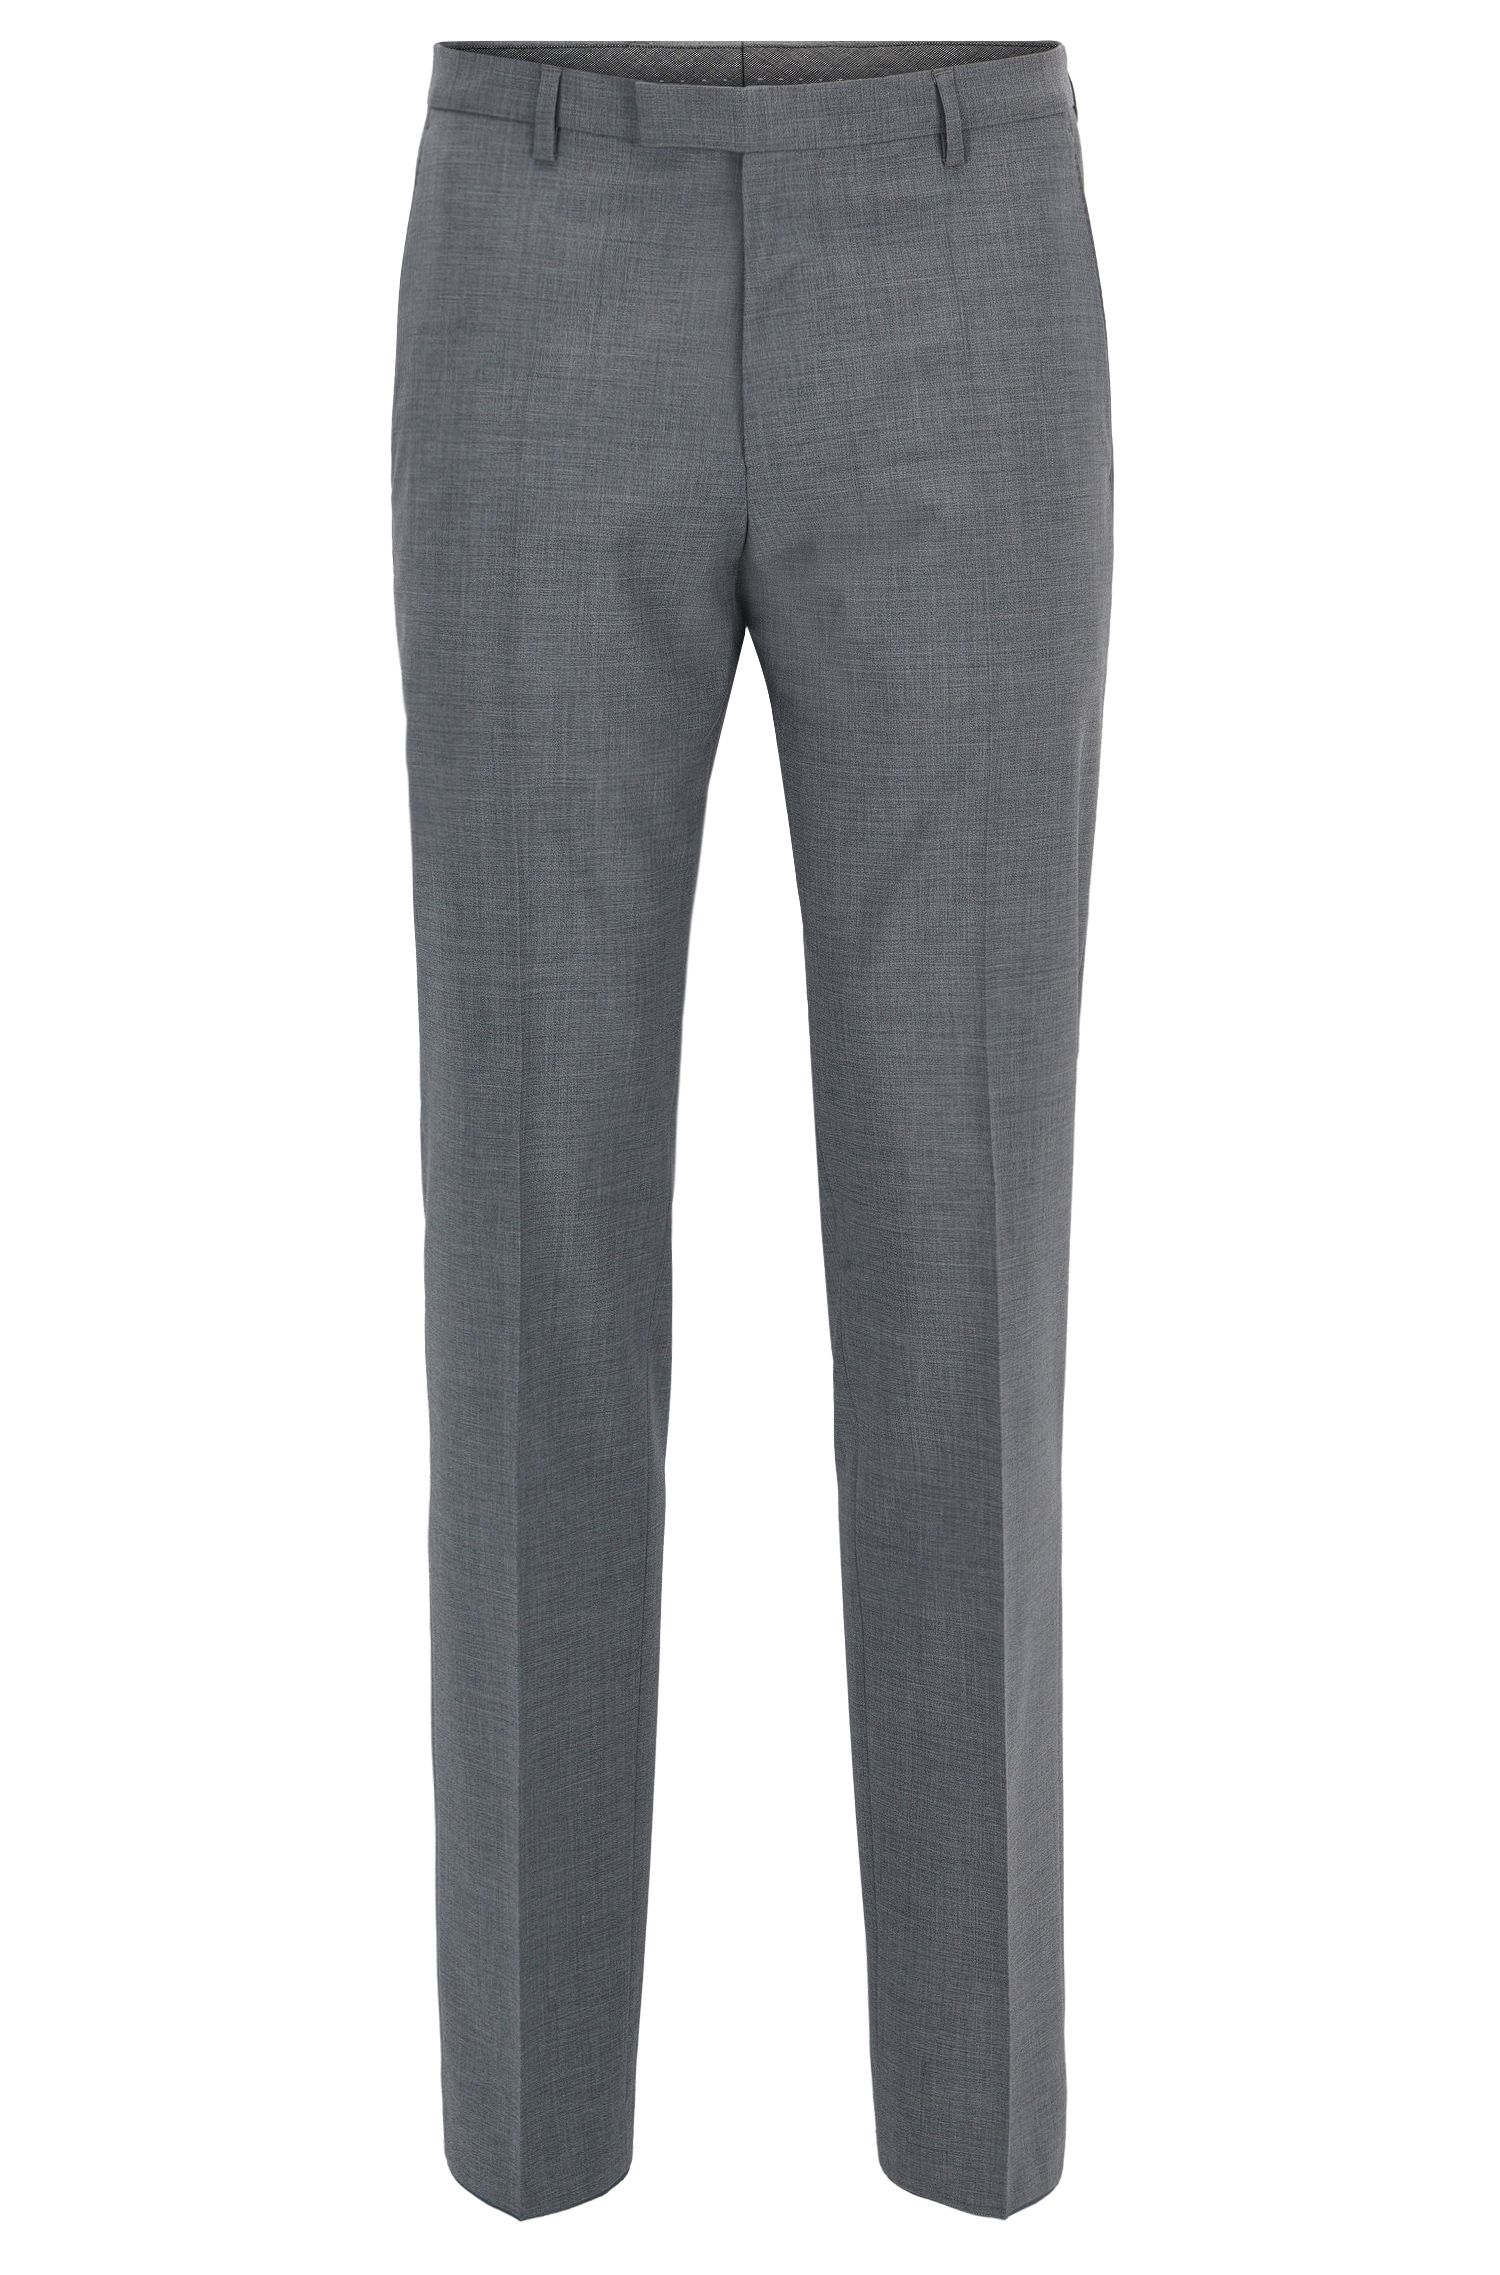 Virgin Wool Cashmere Dress Pant, Regular Fit | Leenon, Grey